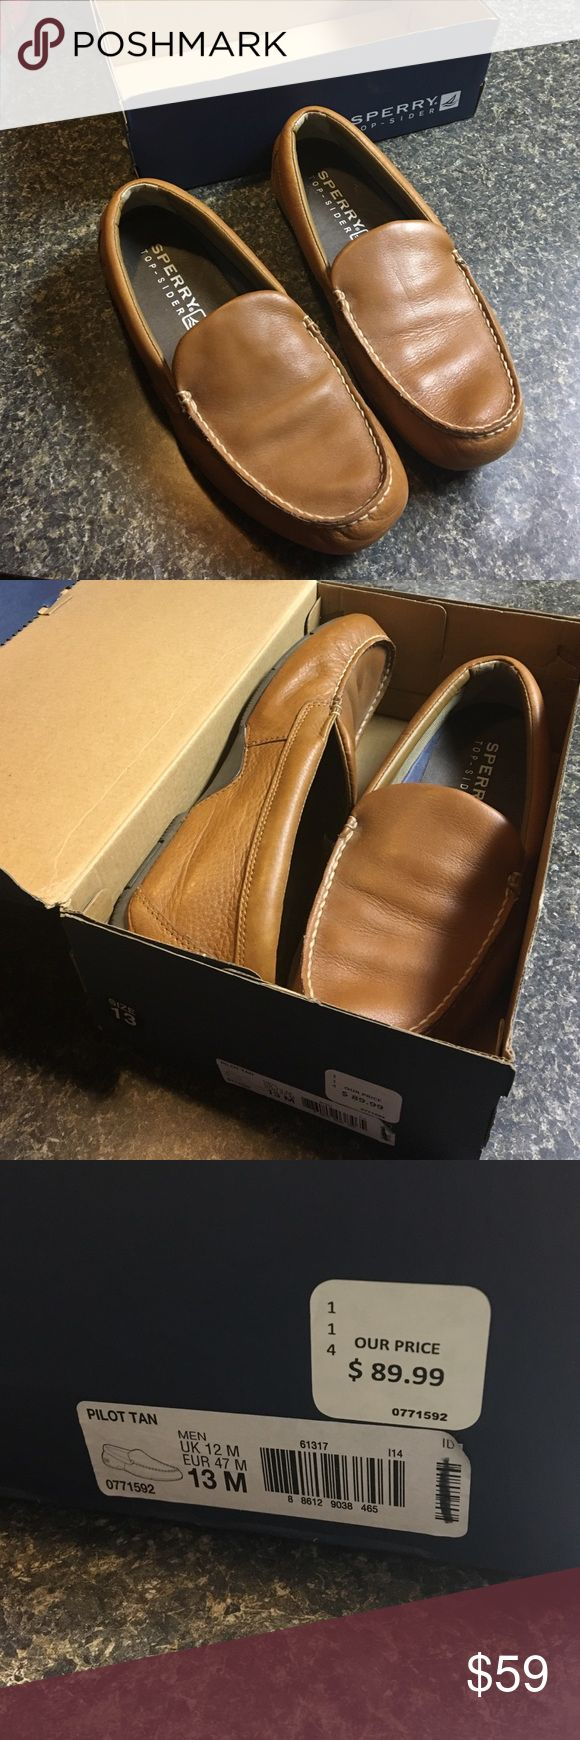 Sperry Top-Sider Men's Pilot Tan Slip On 13M Worn Once by hubby just don't fit his feet right and couldn't return etc etc ..... Will list as NWT attractive and comfortable Sperry Top-Sider Shoes Loafers & Slip-Ons